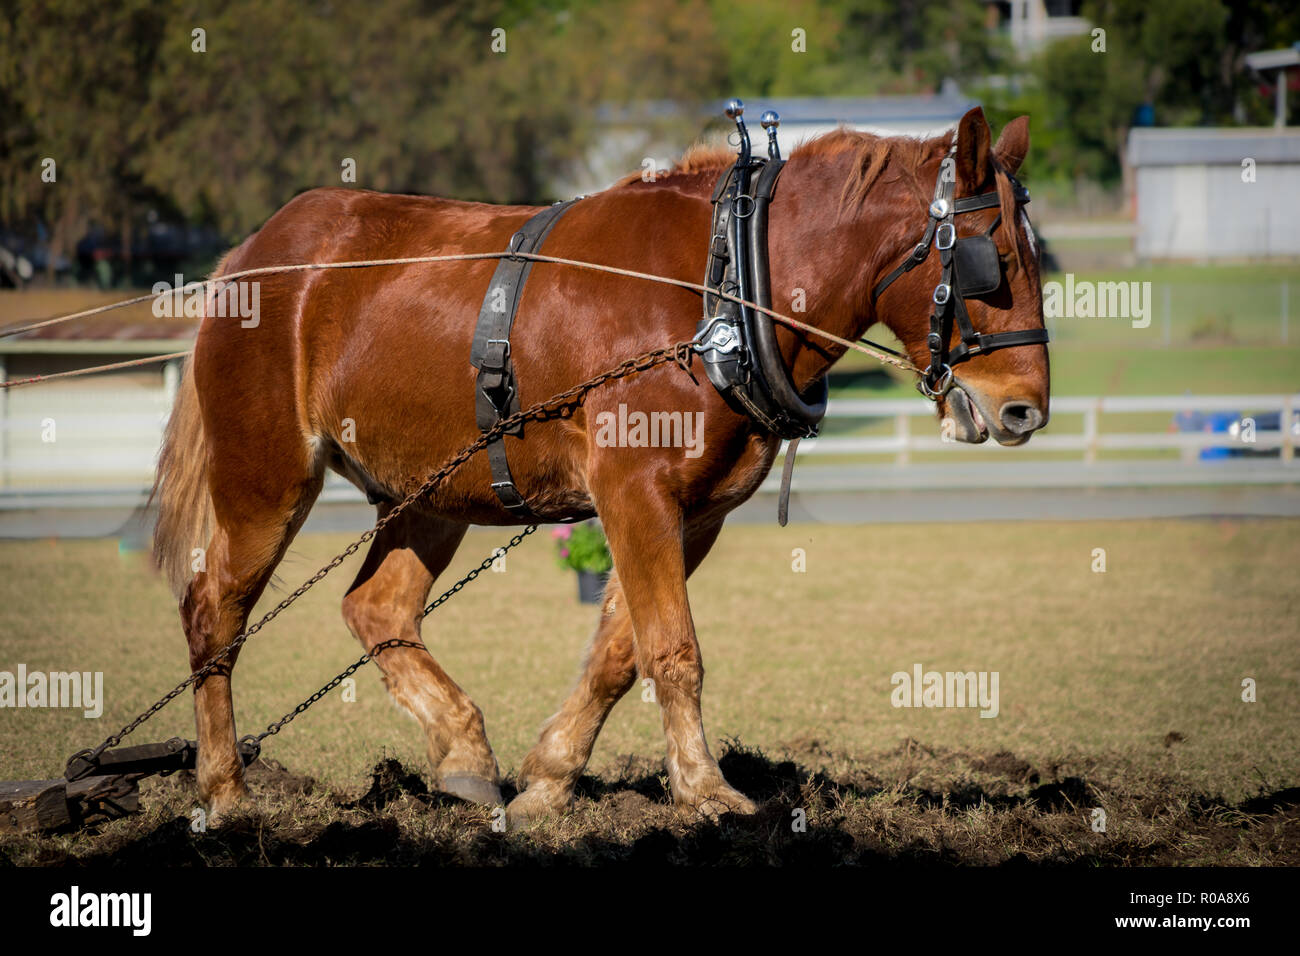 Draft horse in action ploughing the ground - Stock Image